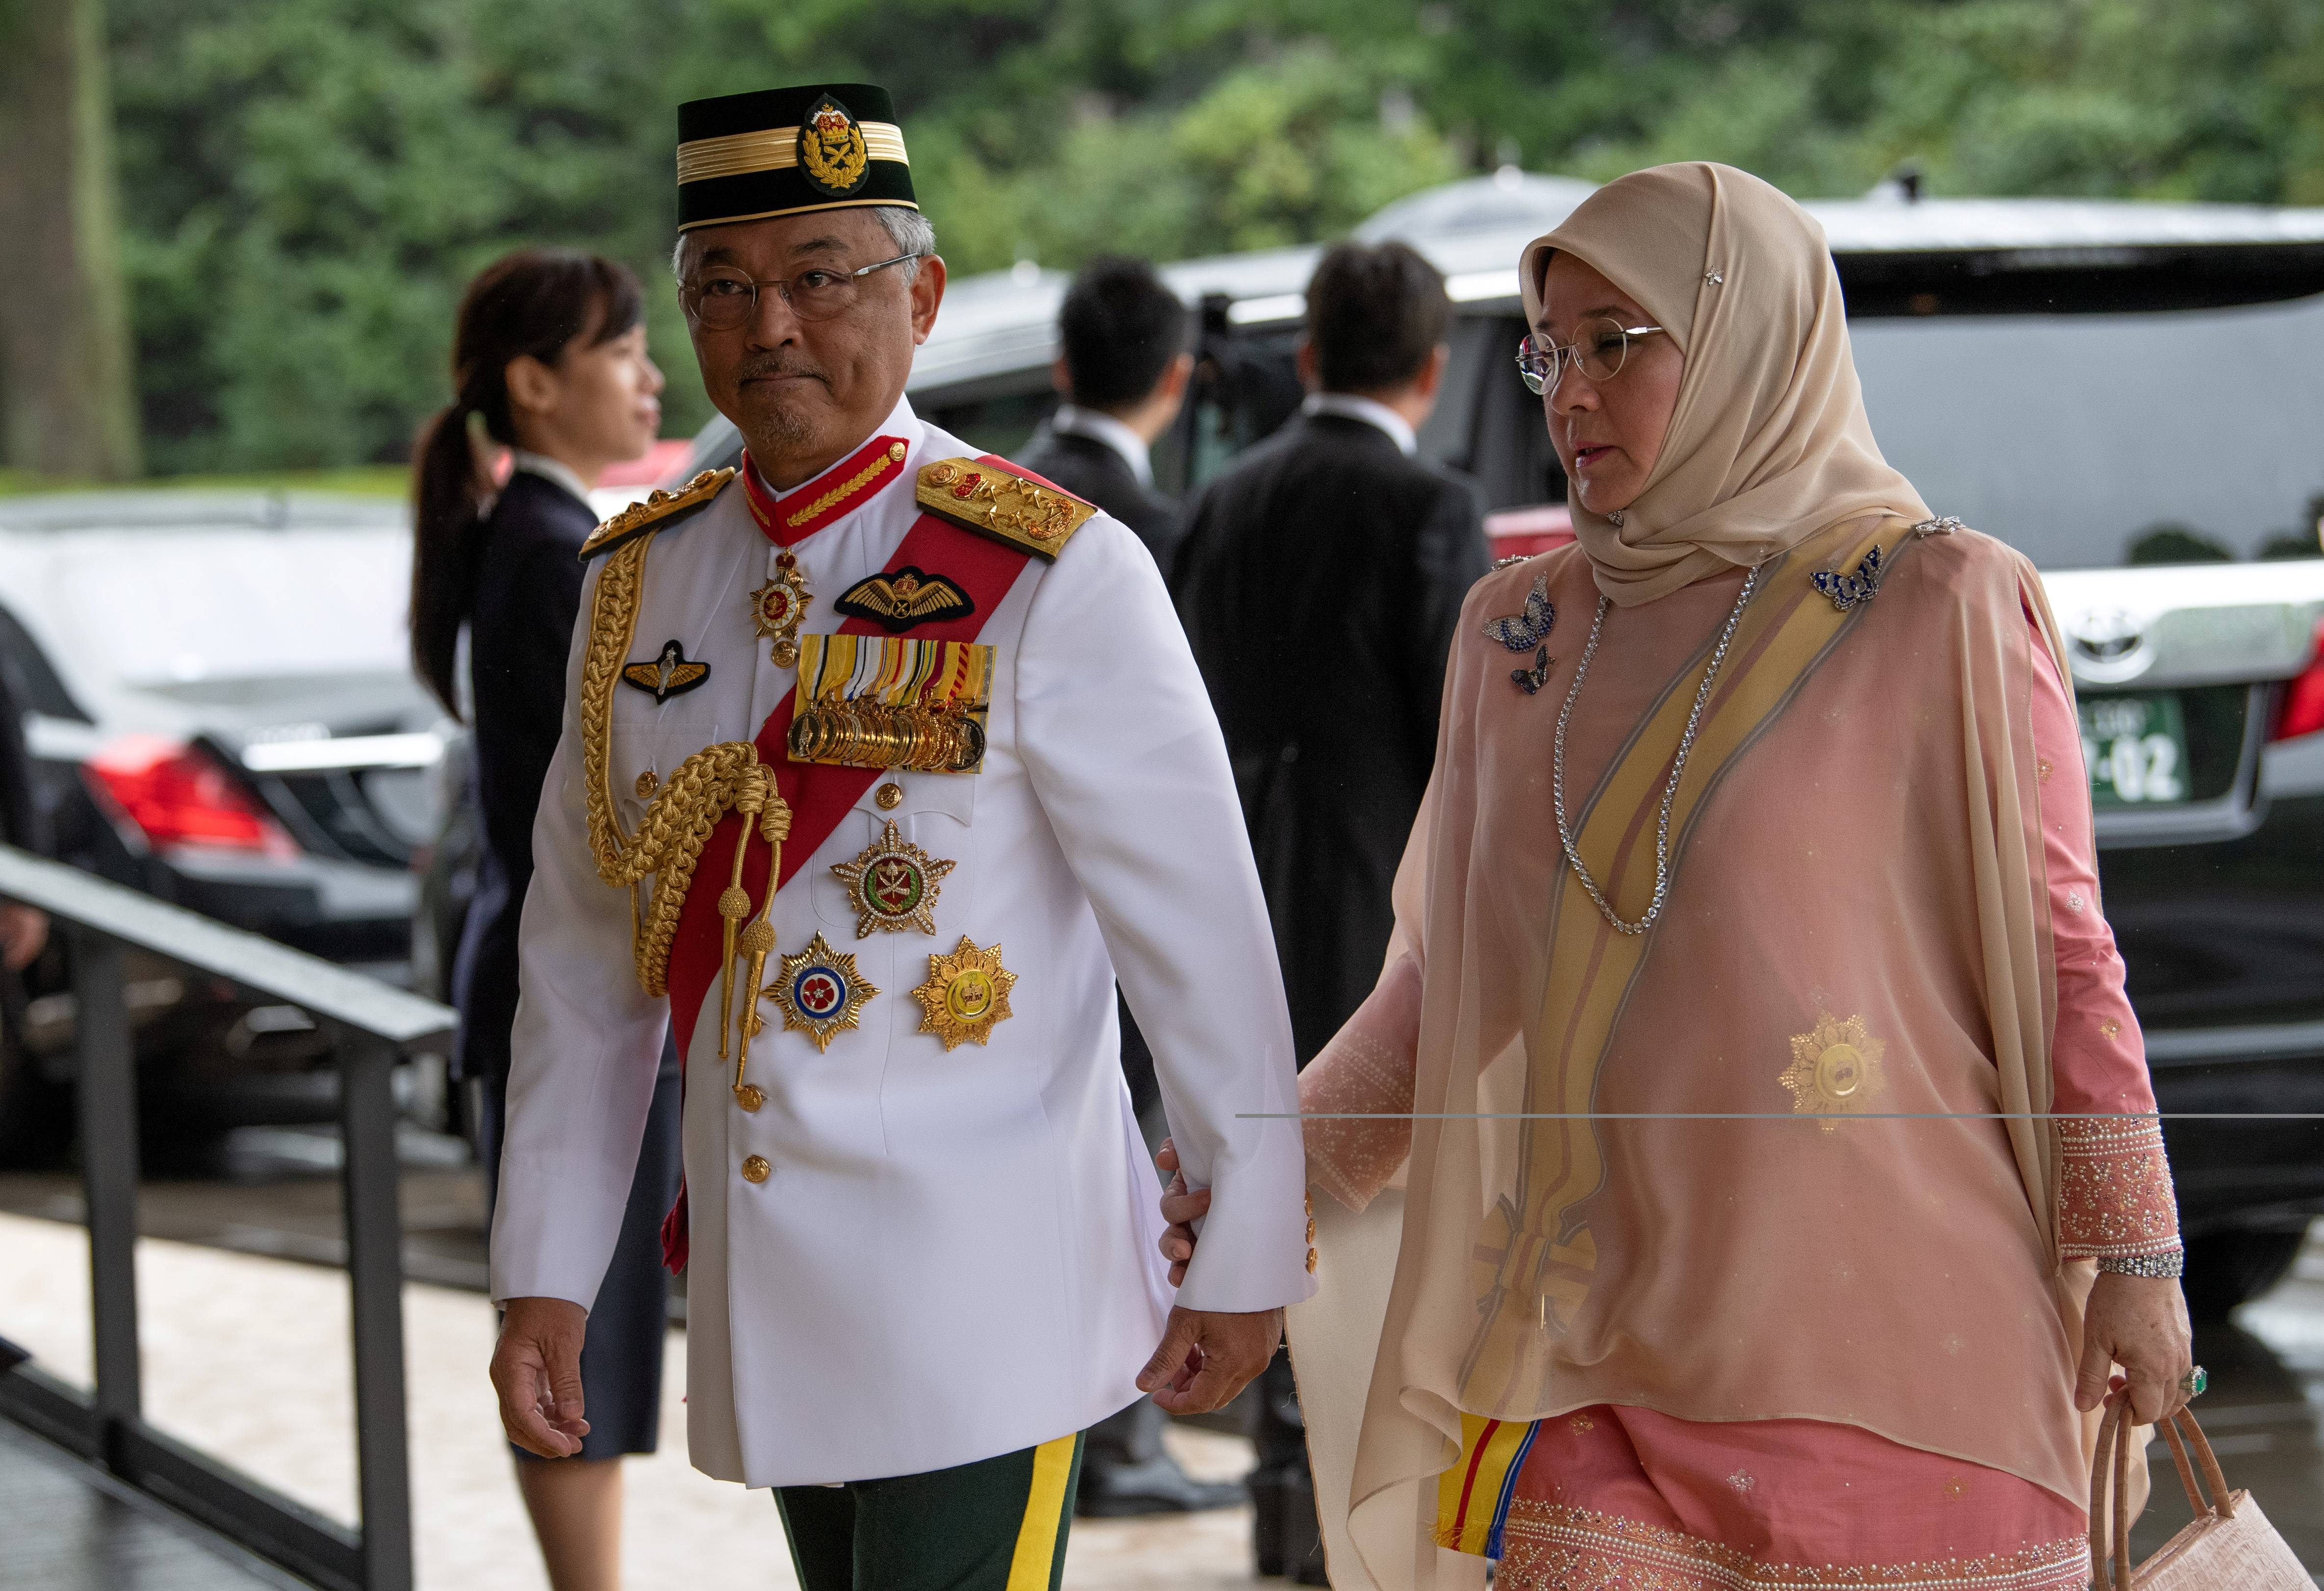 Malaysia's King Sultan Abdullah Sultan Ahmad Shah and Queen Tunku Azizah Aminah Maimunah arrive for the enthronement ceremony of Japan's Emperor Naruhito at the Imperial Palace in Tokyo, Japan October 22, 2019.  Carl Court/Pool via REUTERS